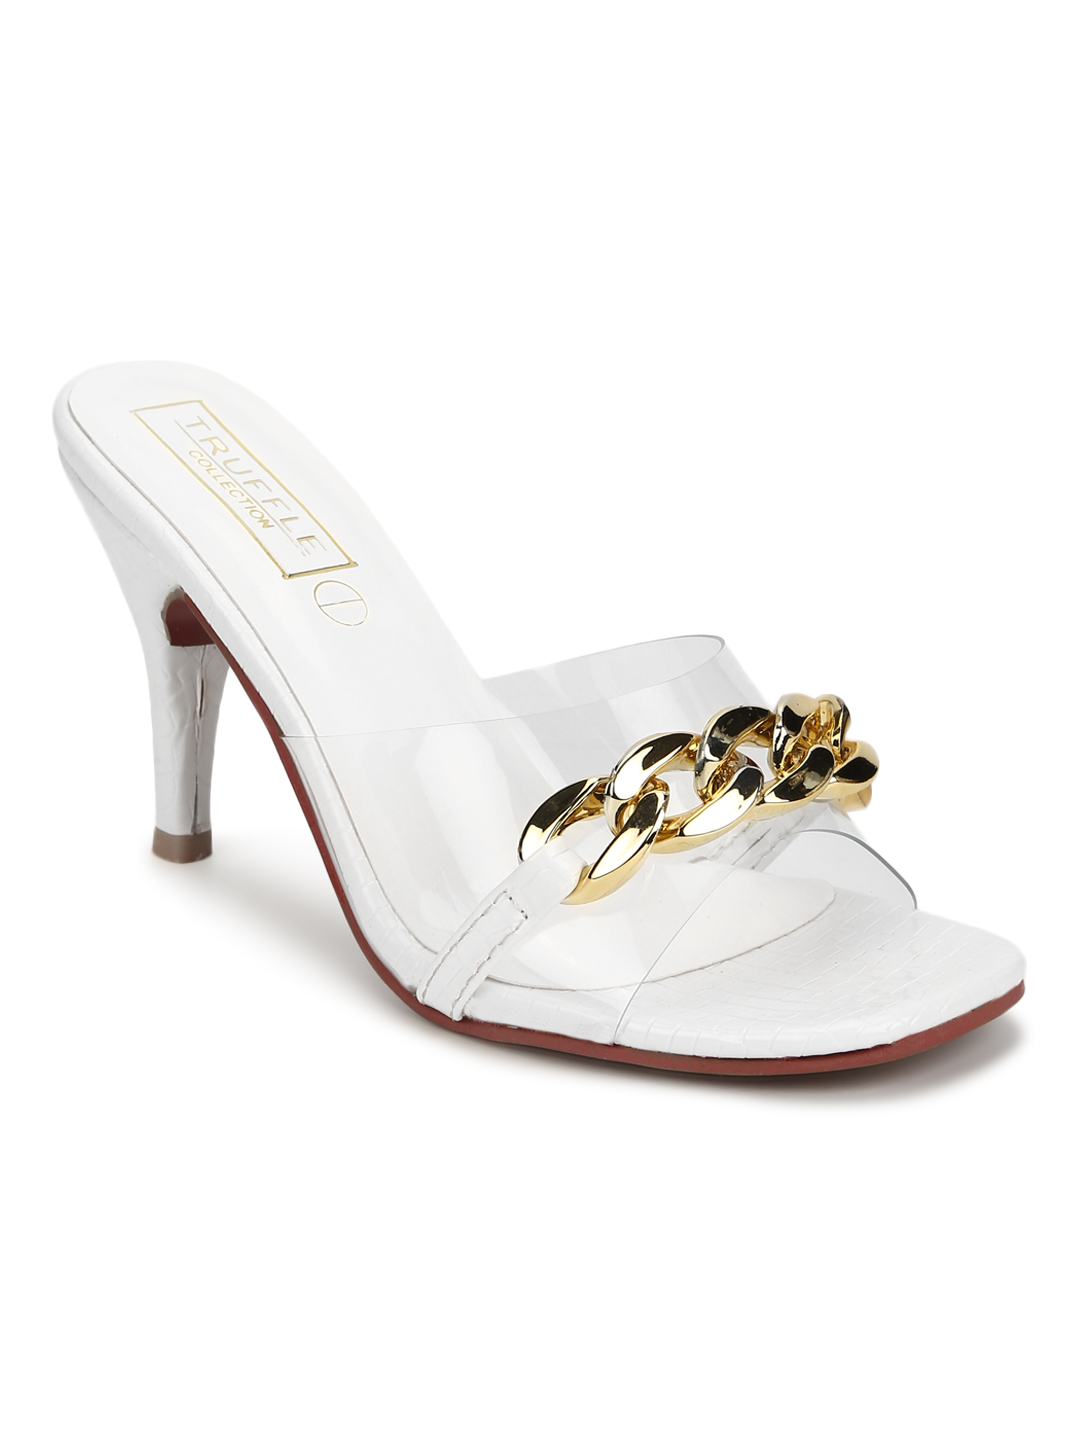 Truffle Collection | Truffle Collection White Patent Snake Gold Chained Stiletto Mules